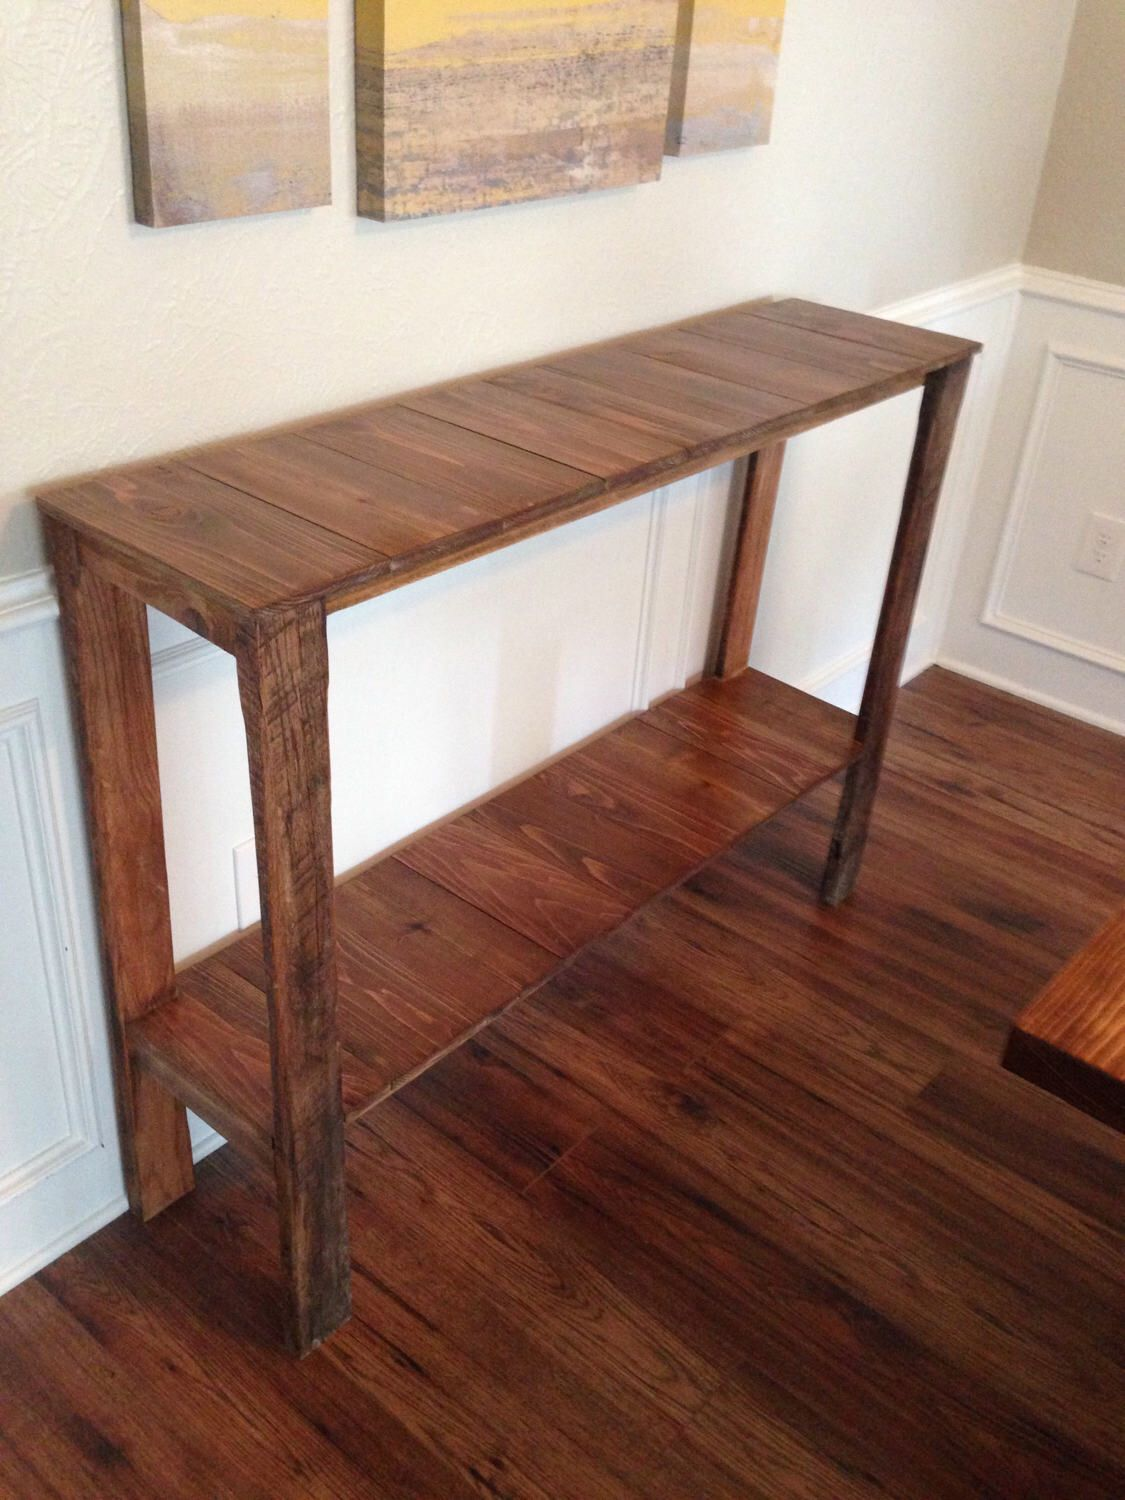 Console Table Dallas Fort Worth Only By Revisionaryelements On Etsy Https Www Etsy Com Listing 517779747 Console Table Dall Table Cedar Table Console Table